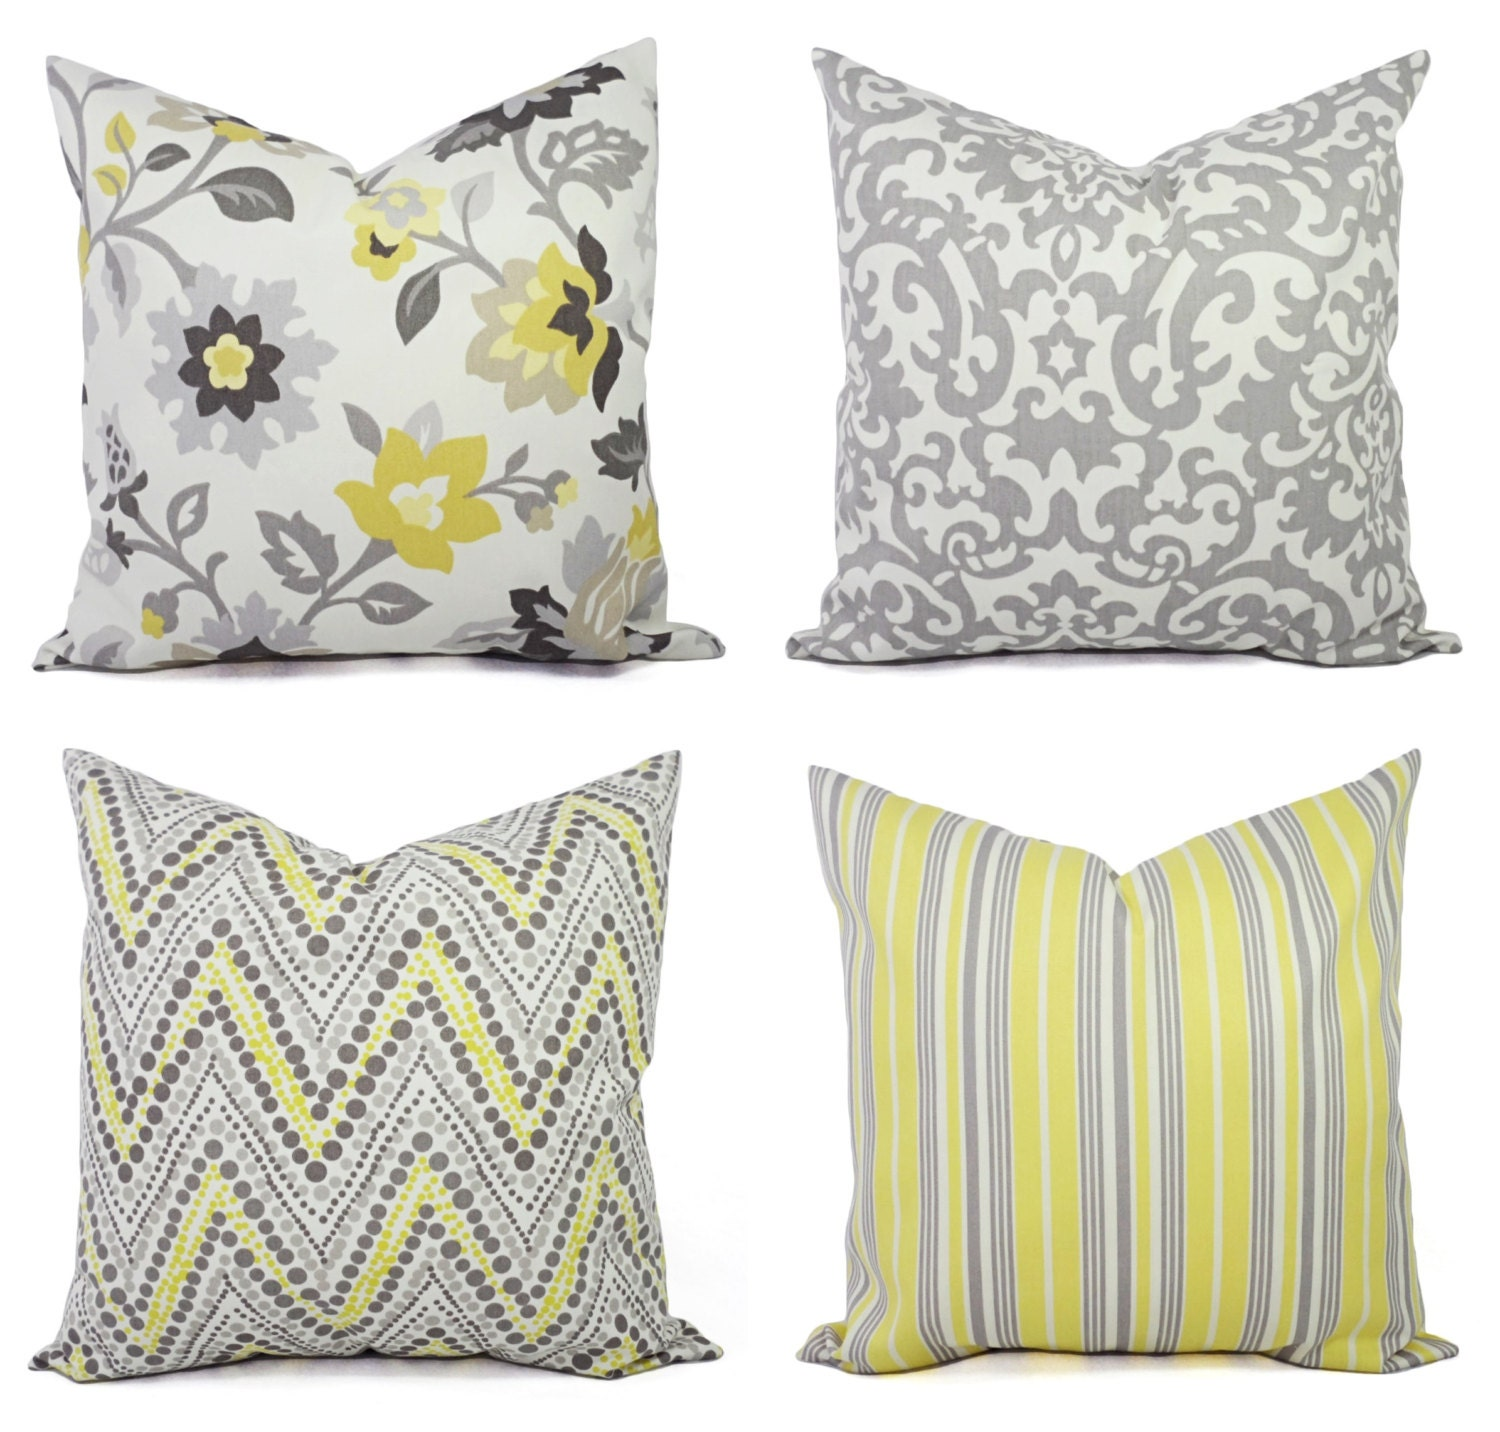 One Yellow and Grey Couch Pillow Cover Pick by  : ilfullxfull785418541caif from www.etsy.com size 1500 x 1432 jpeg 325kB